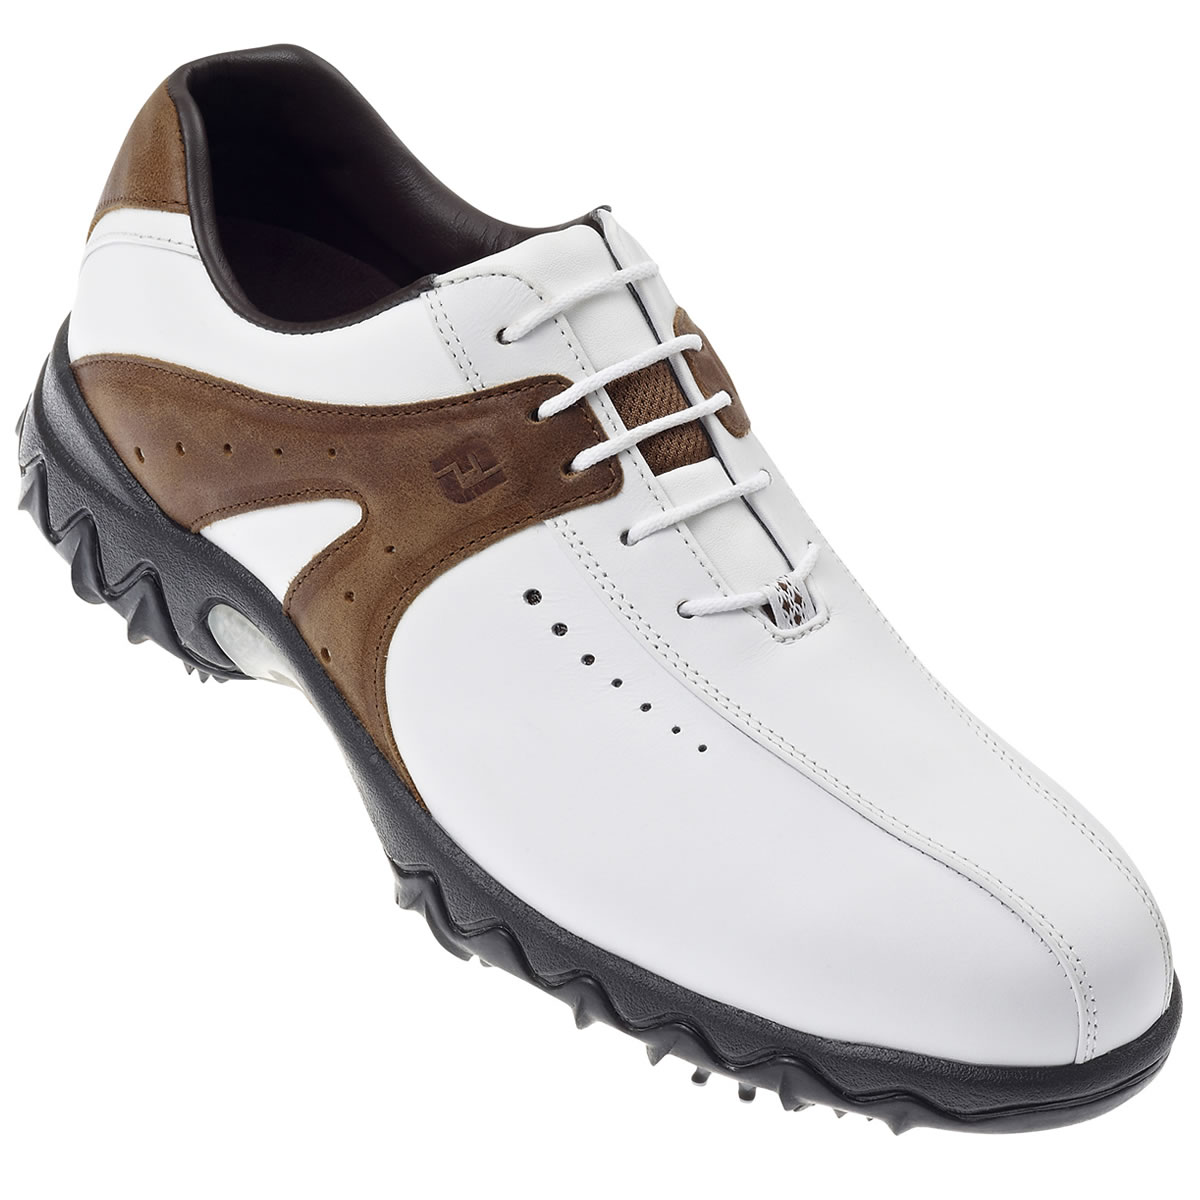 FootJoy Contour Golf Shoes White/Brown #54163 - review, compare prices